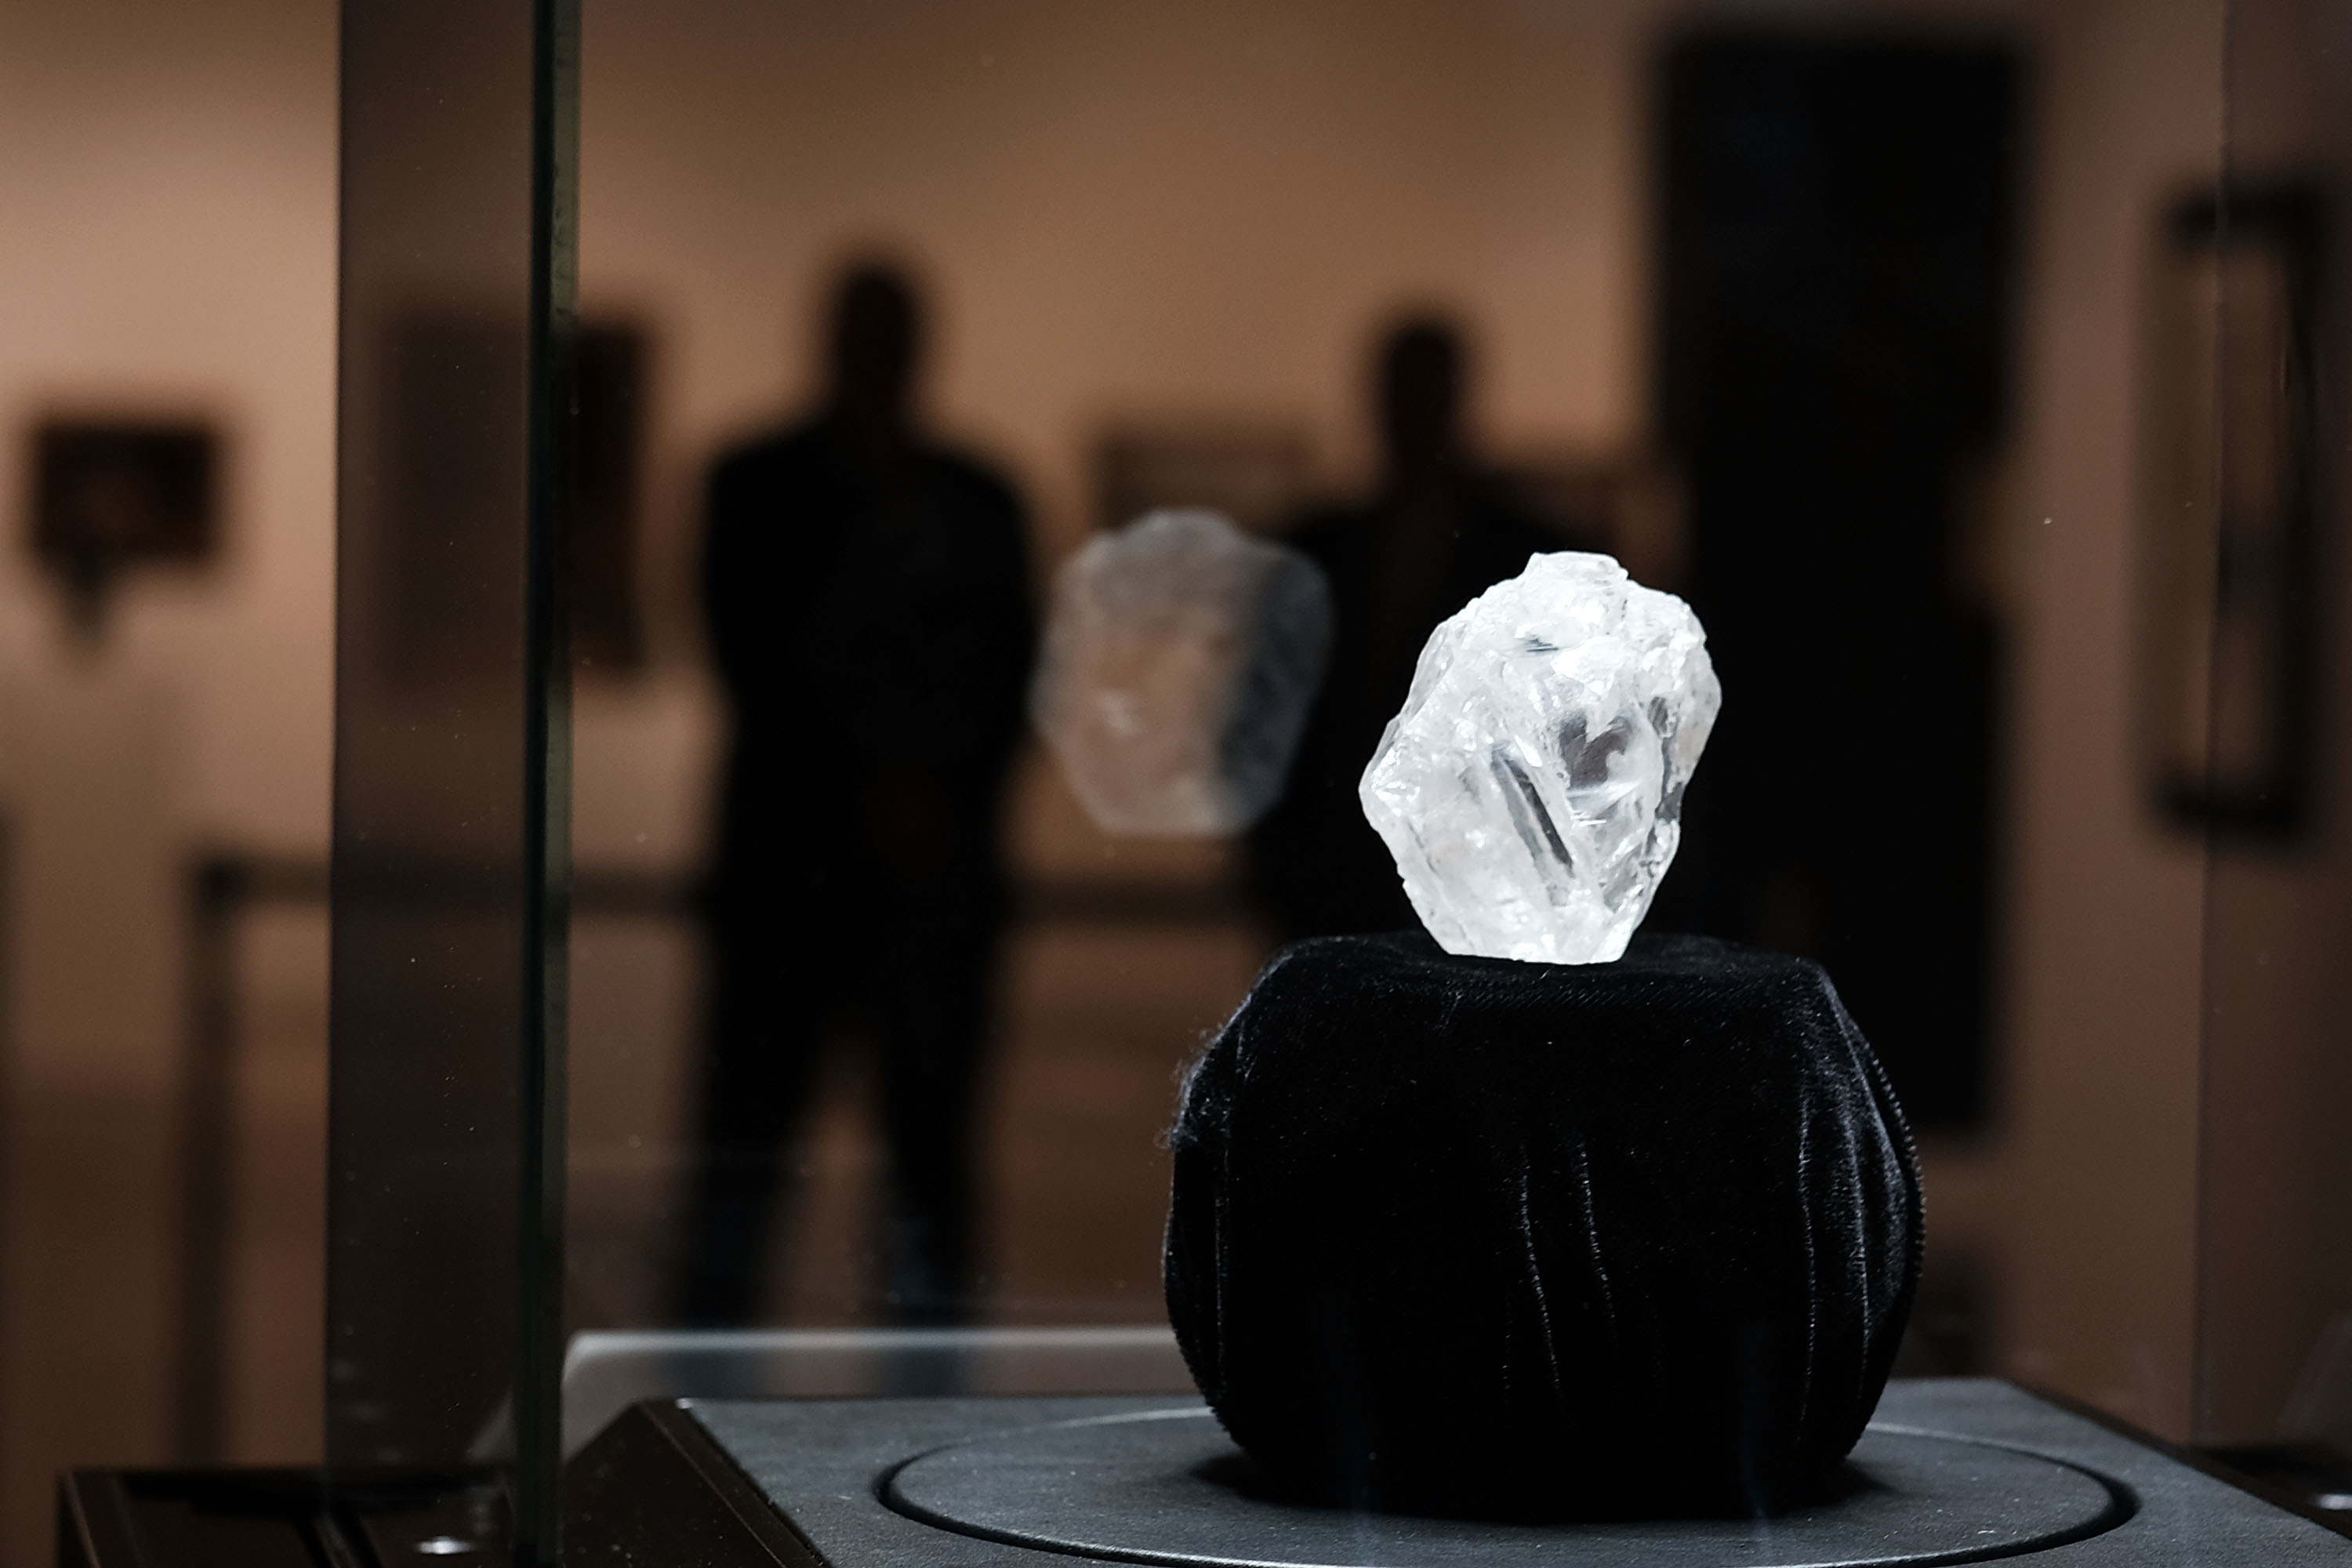 Sotheby's To Auction Off Largest Diamond Discovered In 100 Years